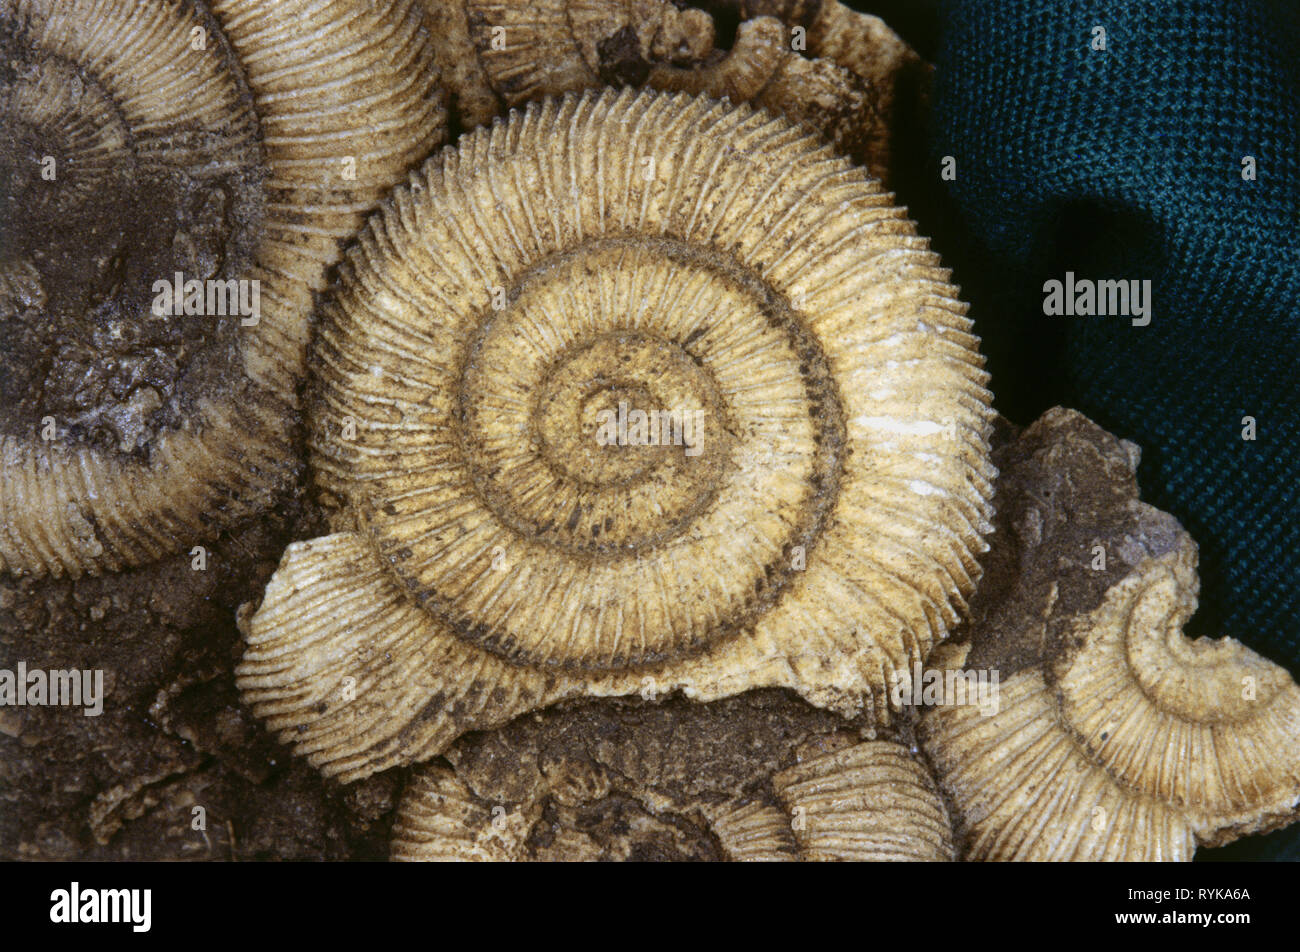 prehistory, prehistoric times, petrification, ammonite, Additional-Rights-Clearance-Info-Not-Available - Stock Image